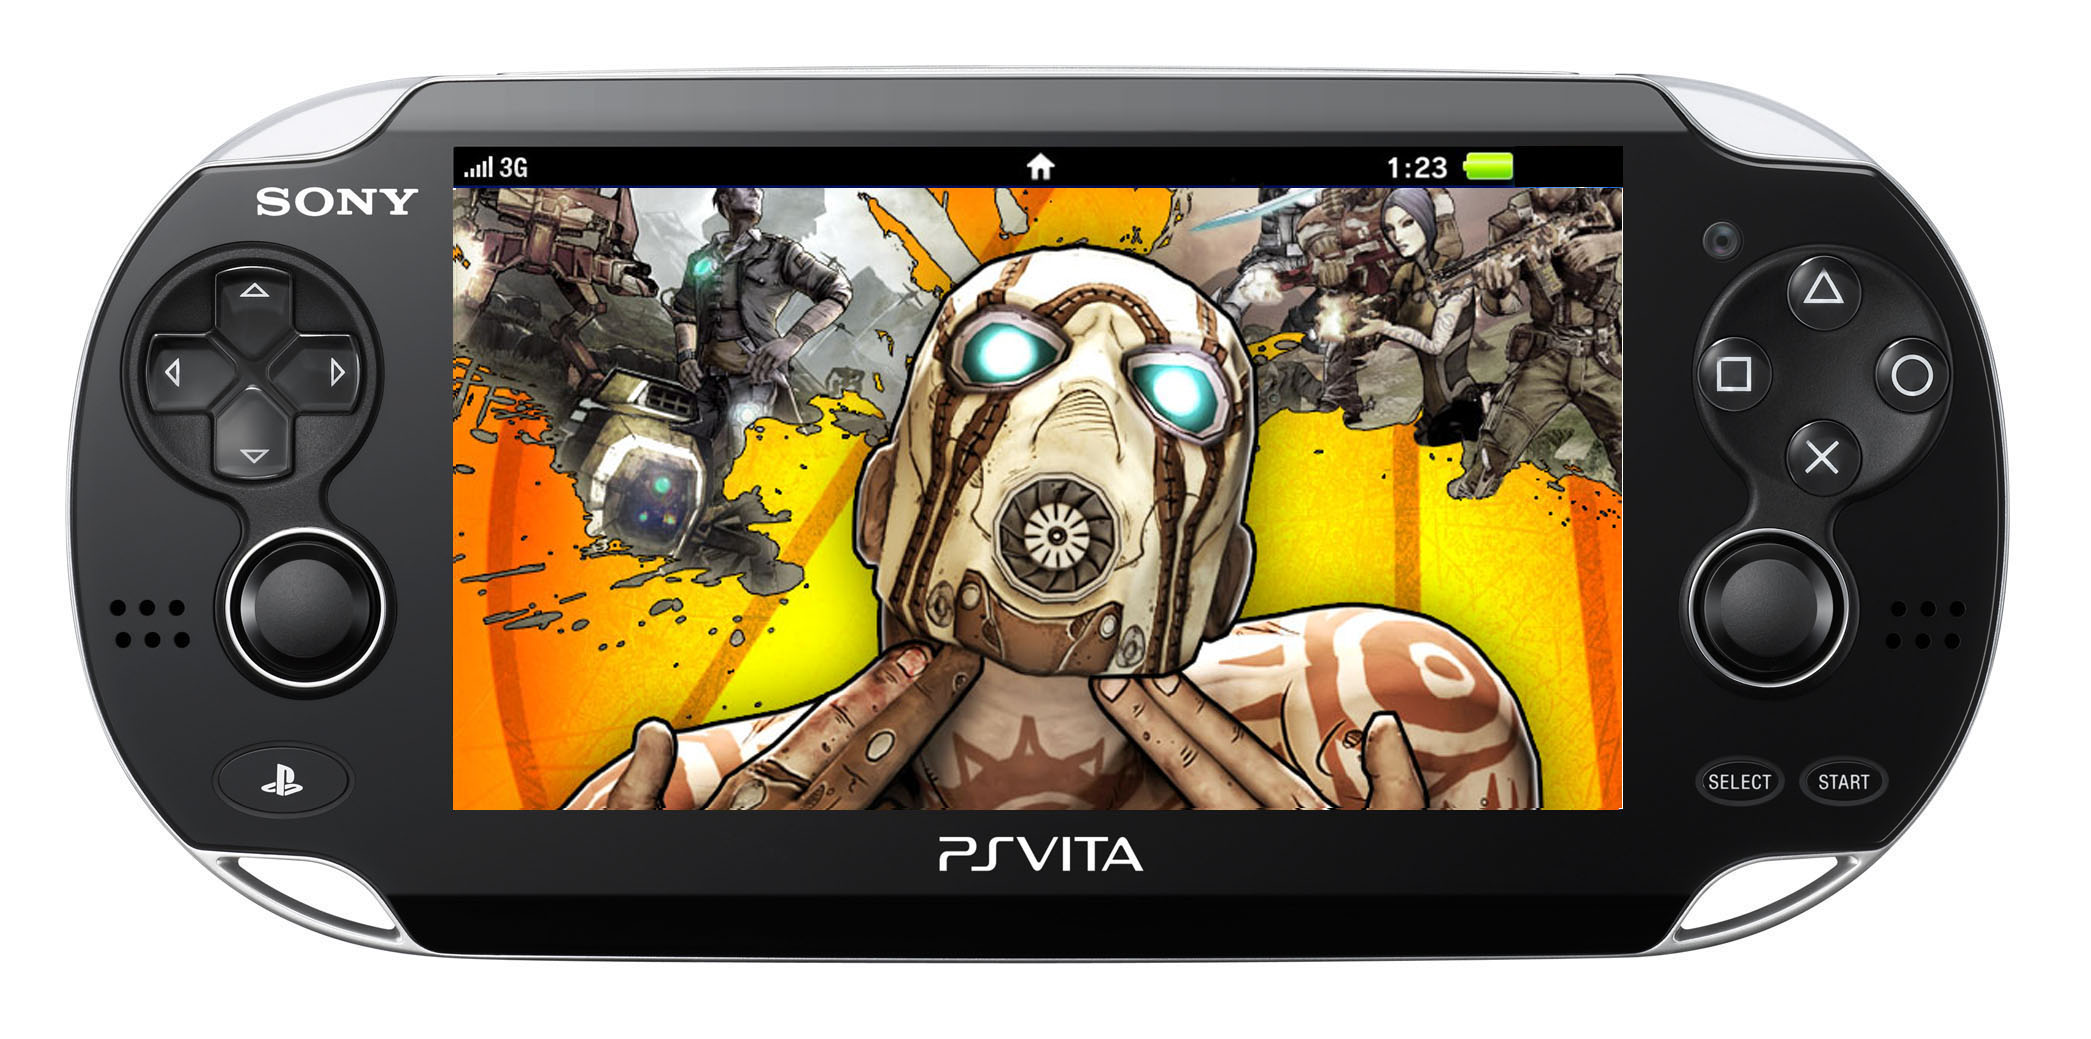 While the Vita is essentially dead in the west, Sony re-iterates that physical production will continue in Japan screenshot